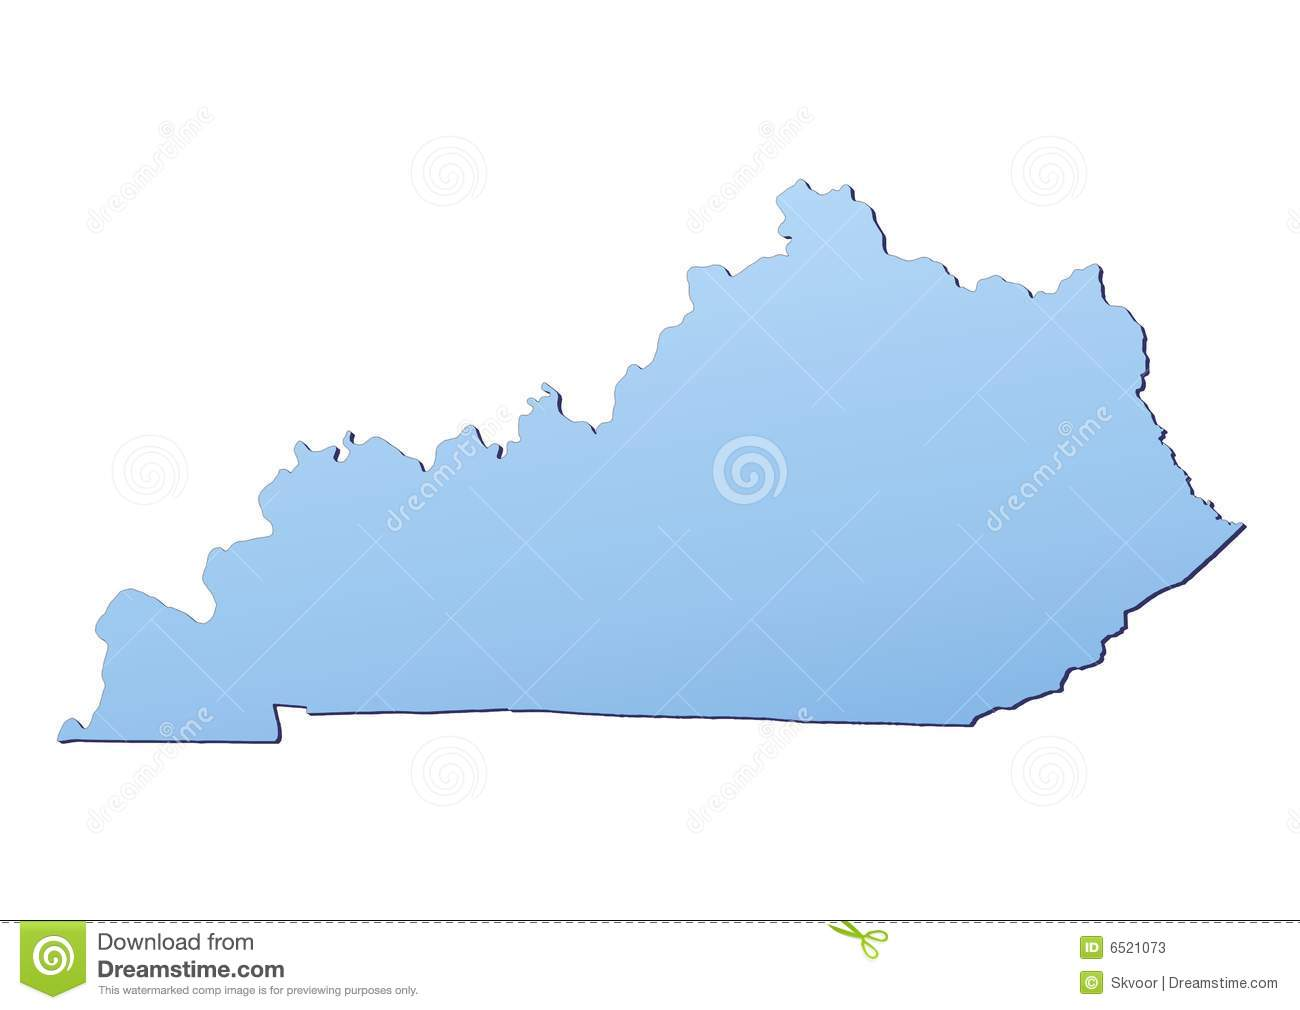 Diagram Of Us Map States Kentucky Download More Maps Diagram - Us map states kentucky